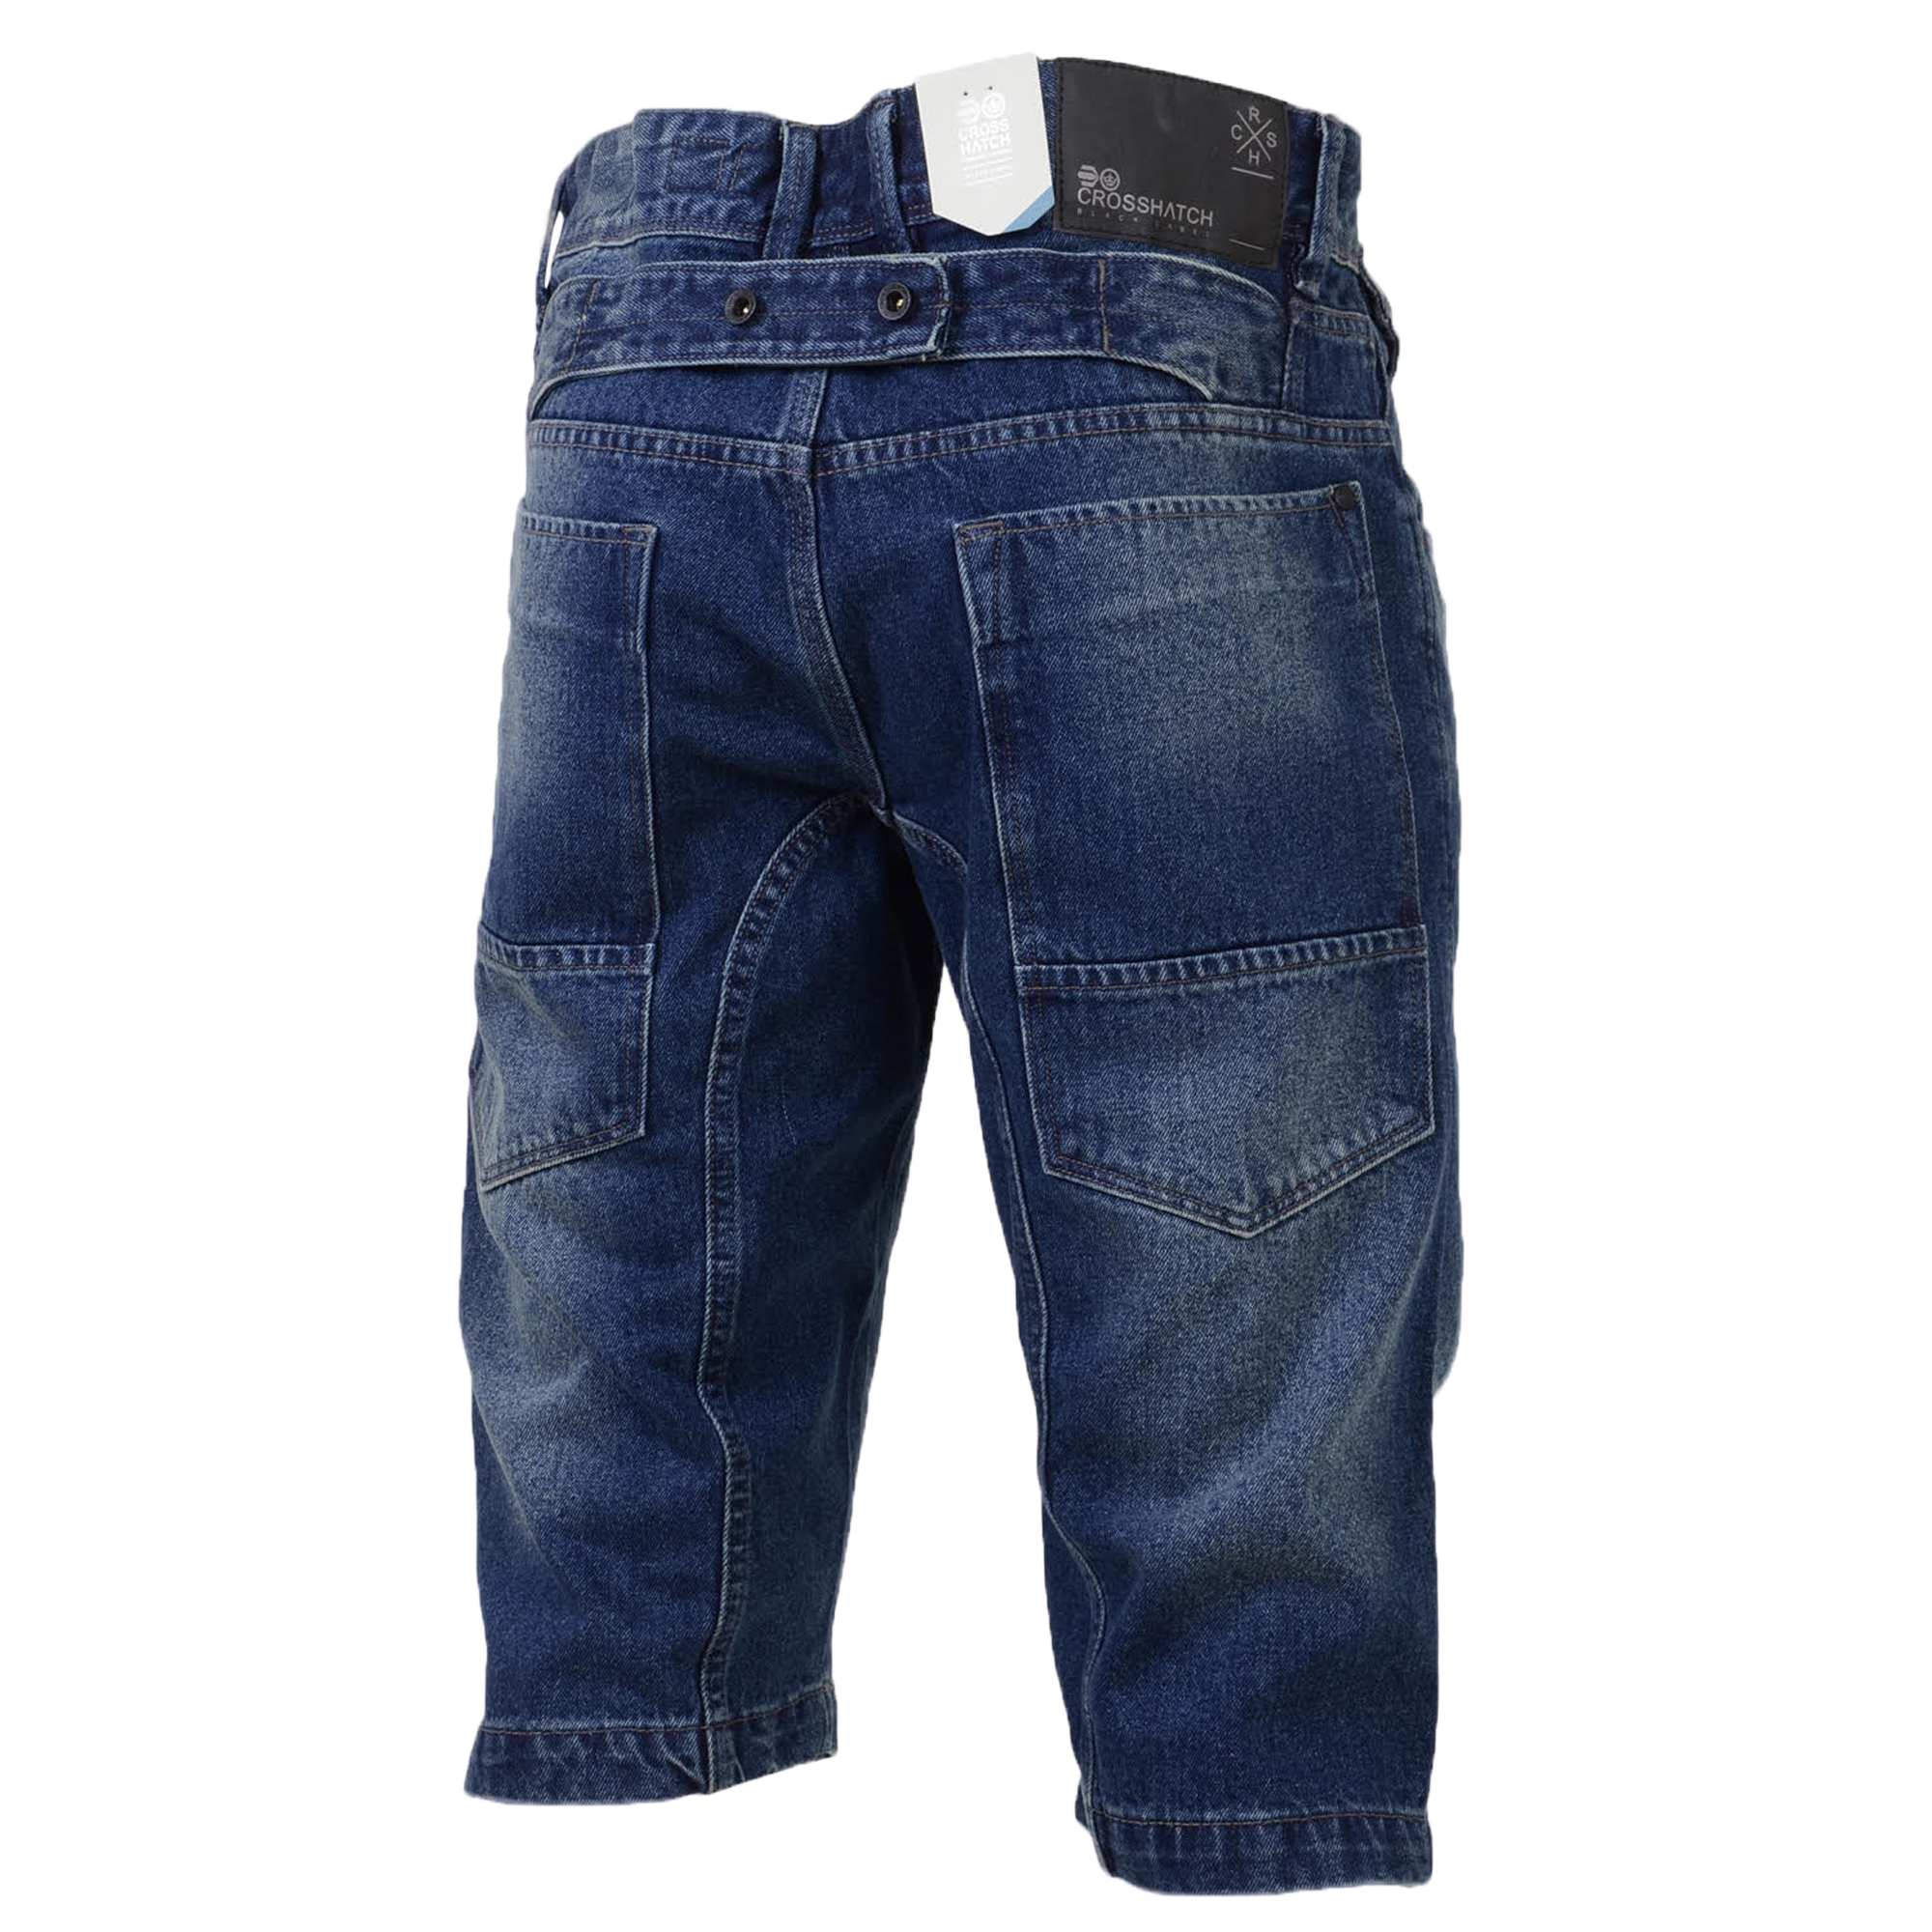 herren jeans shorts gitterschnitt combat cargo threadbare knielang jeans sommer ebay. Black Bedroom Furniture Sets. Home Design Ideas